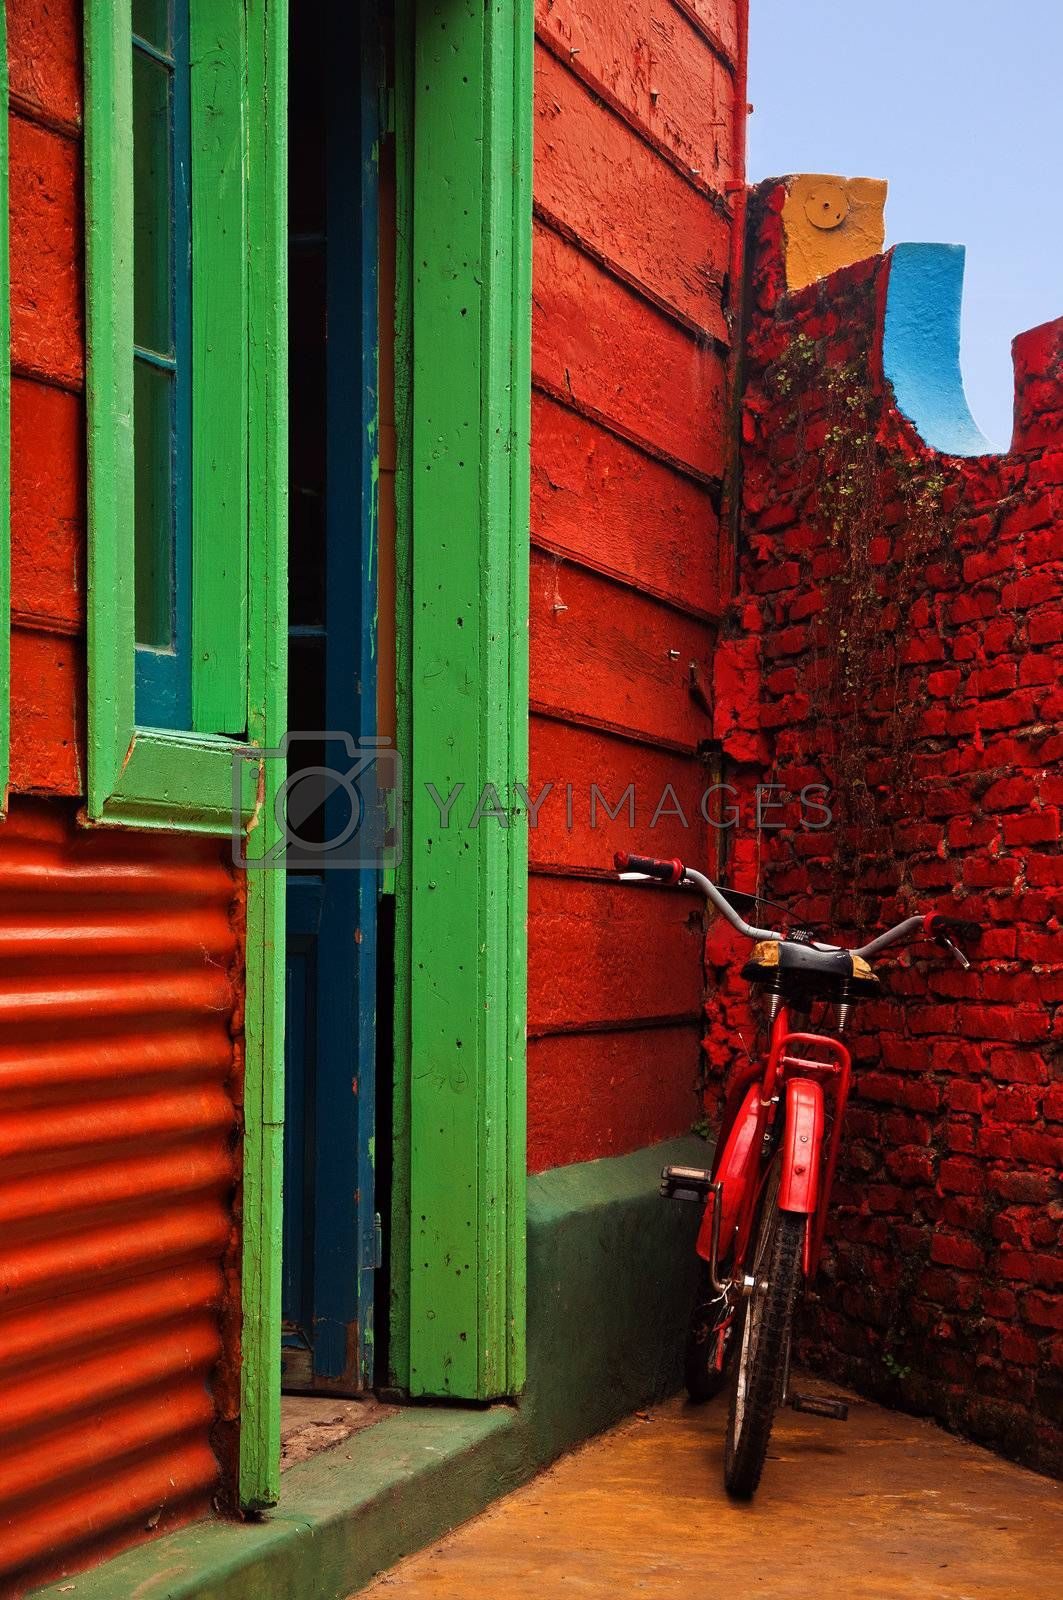 A red bicycle resting against a red wall in Buenos Aires, Argentina.